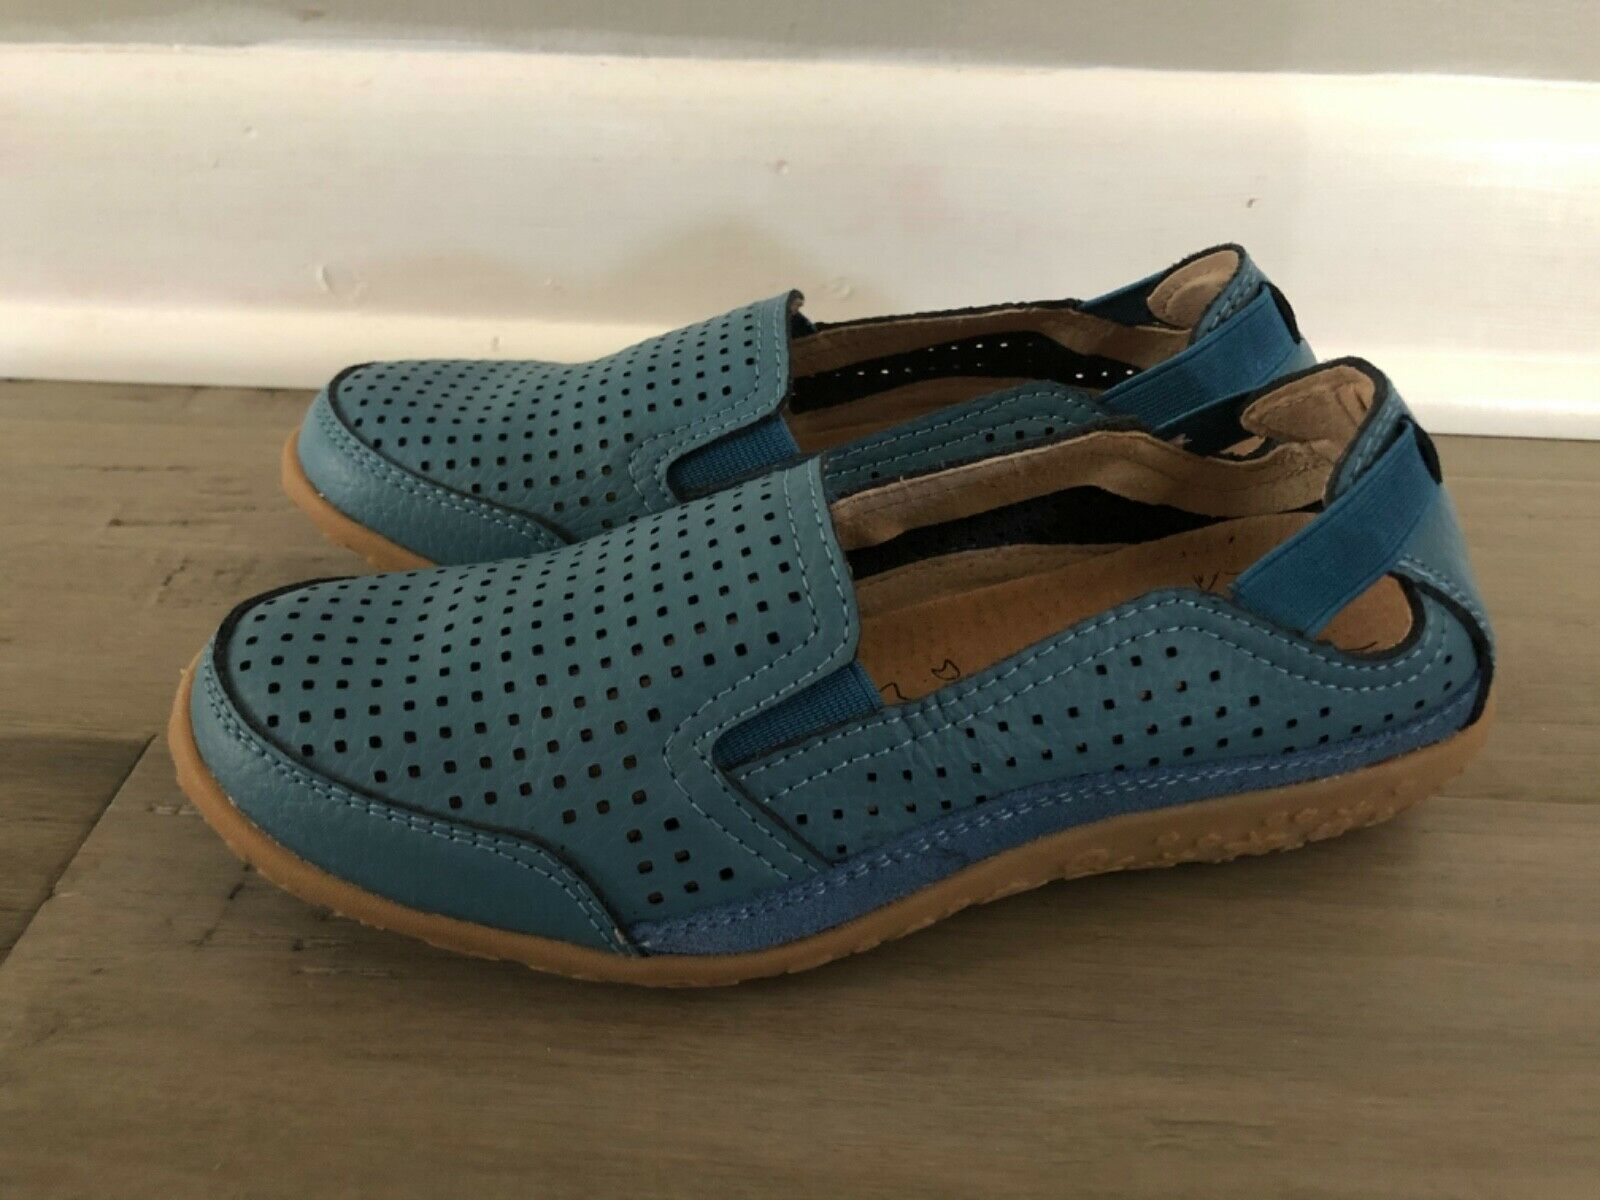 Spring Step Women's Size 36W 5.5-6 Juhi Perforated Slip On Blue Leather Loafers